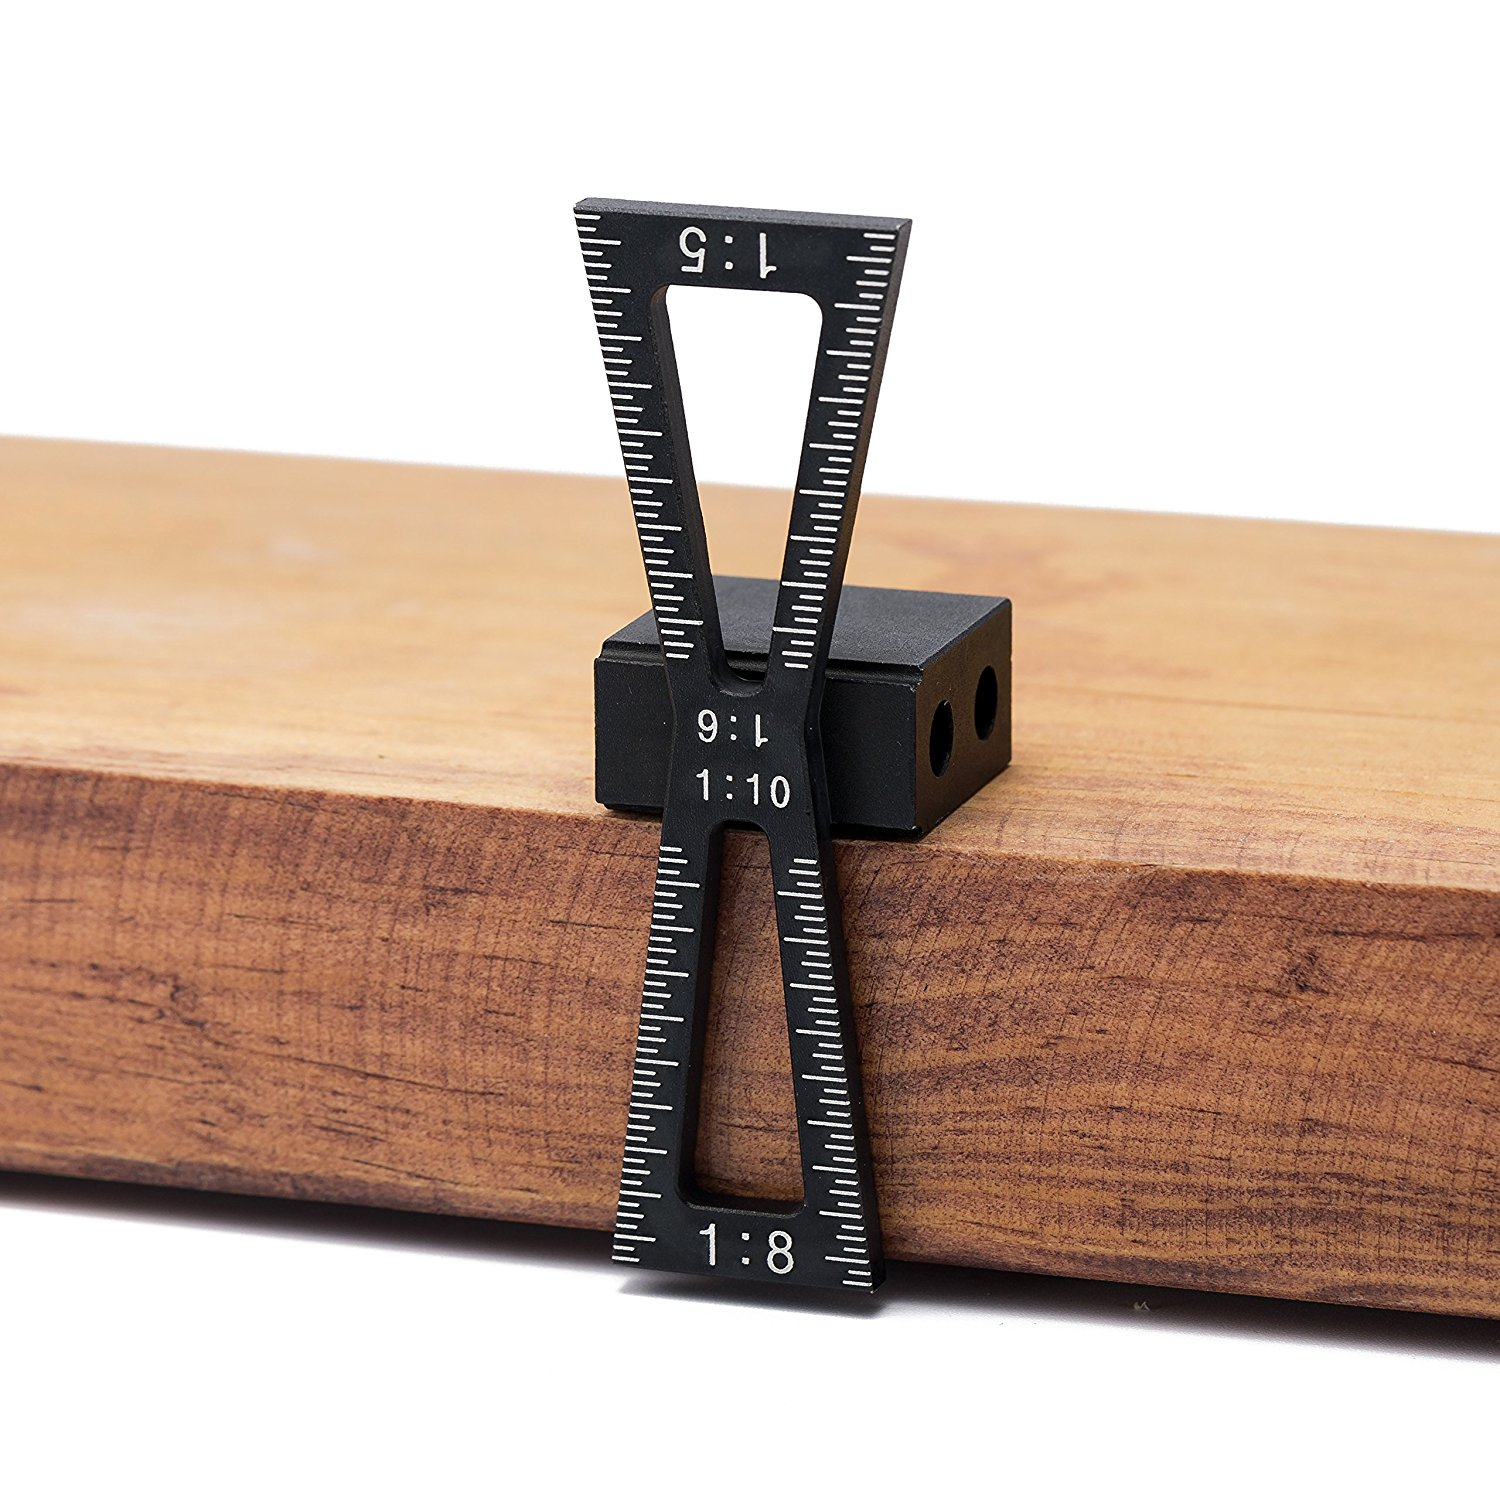 6. Dovetail Marker - Newkiton Dovetail Marker Available at Amazon for $12.99